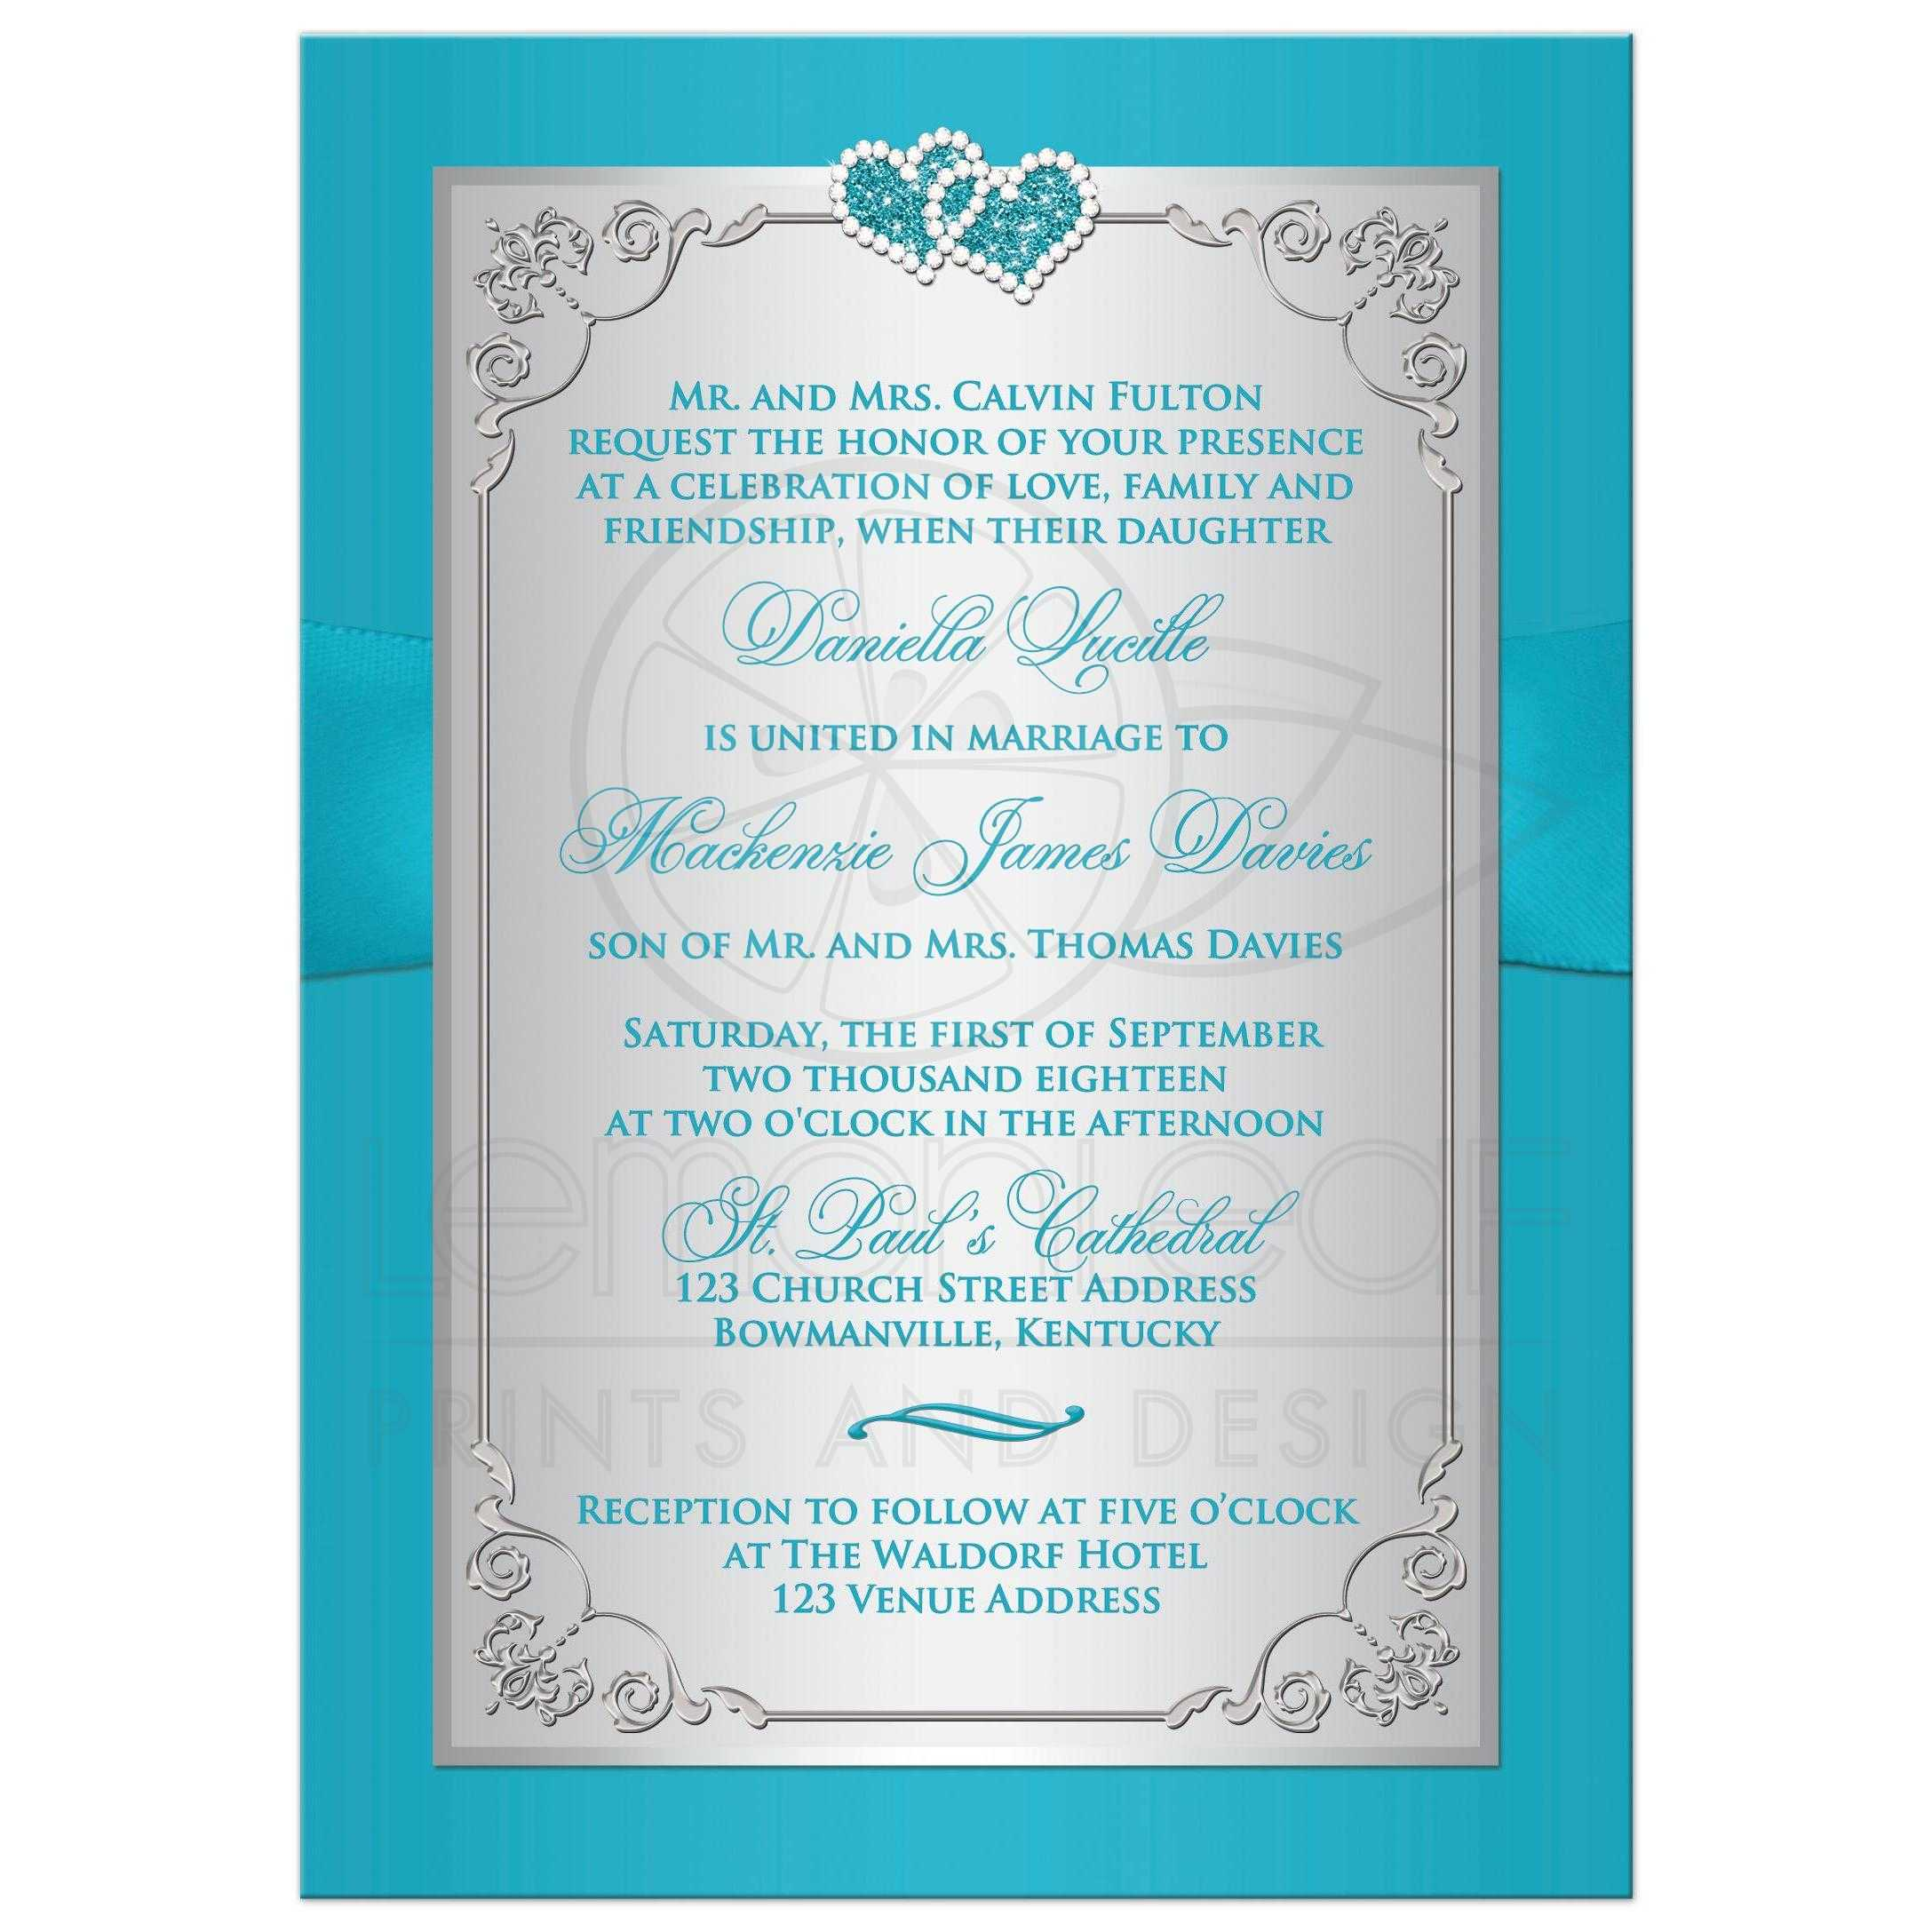 Wedding Invitation Turquoise Silver Floral Printed